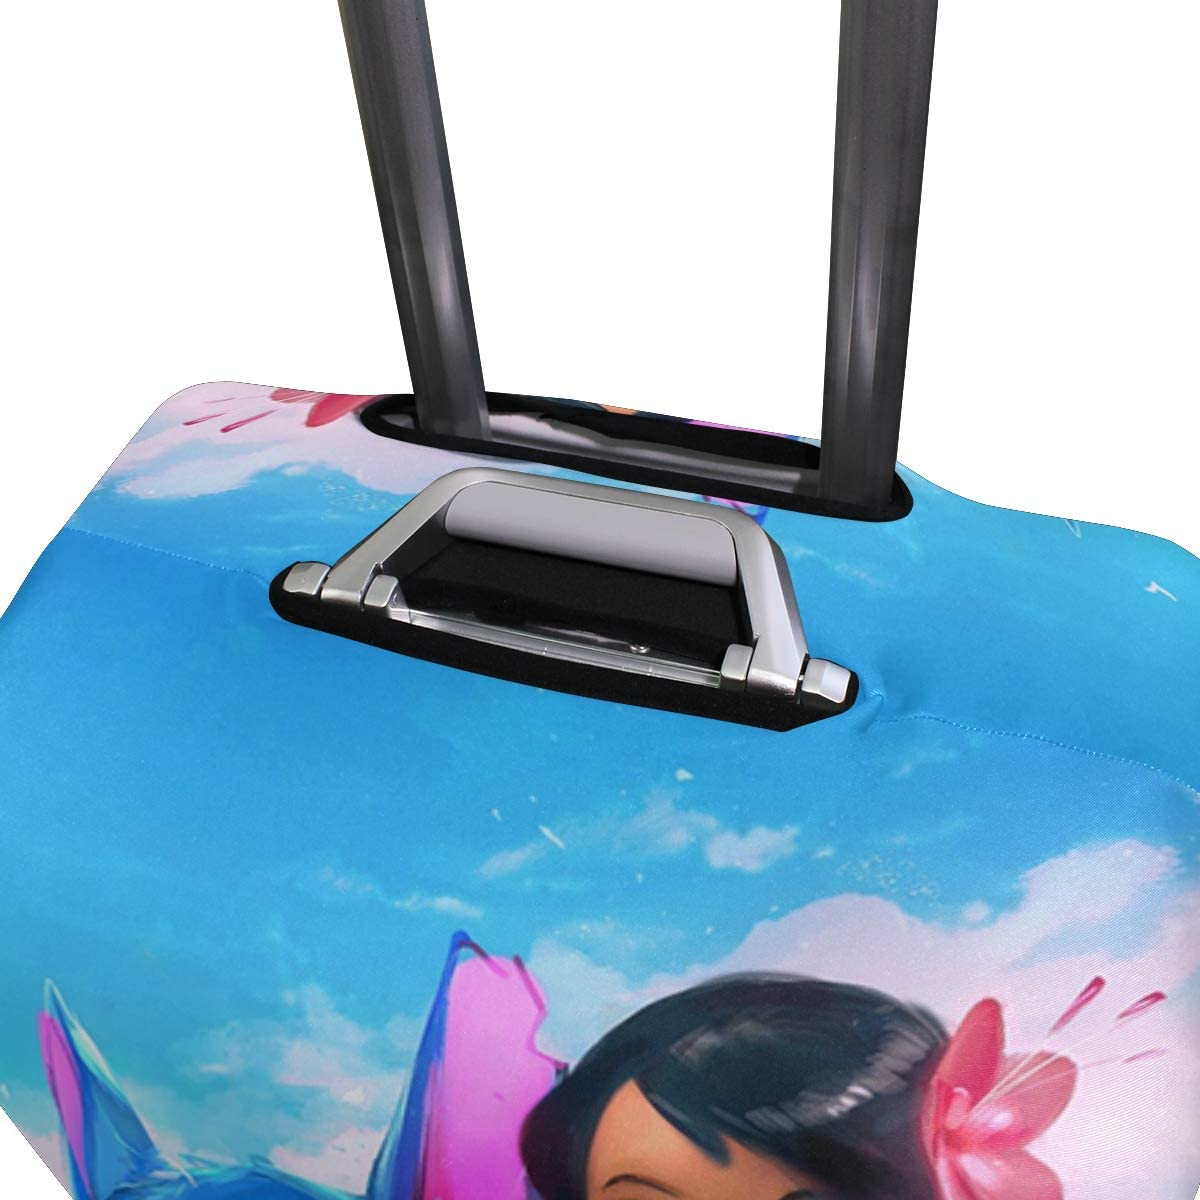 Stitch Lilo Moana Travel Luggage Cover Suitcase Protector Fits 26-28 Inch Washable Baggage Covers